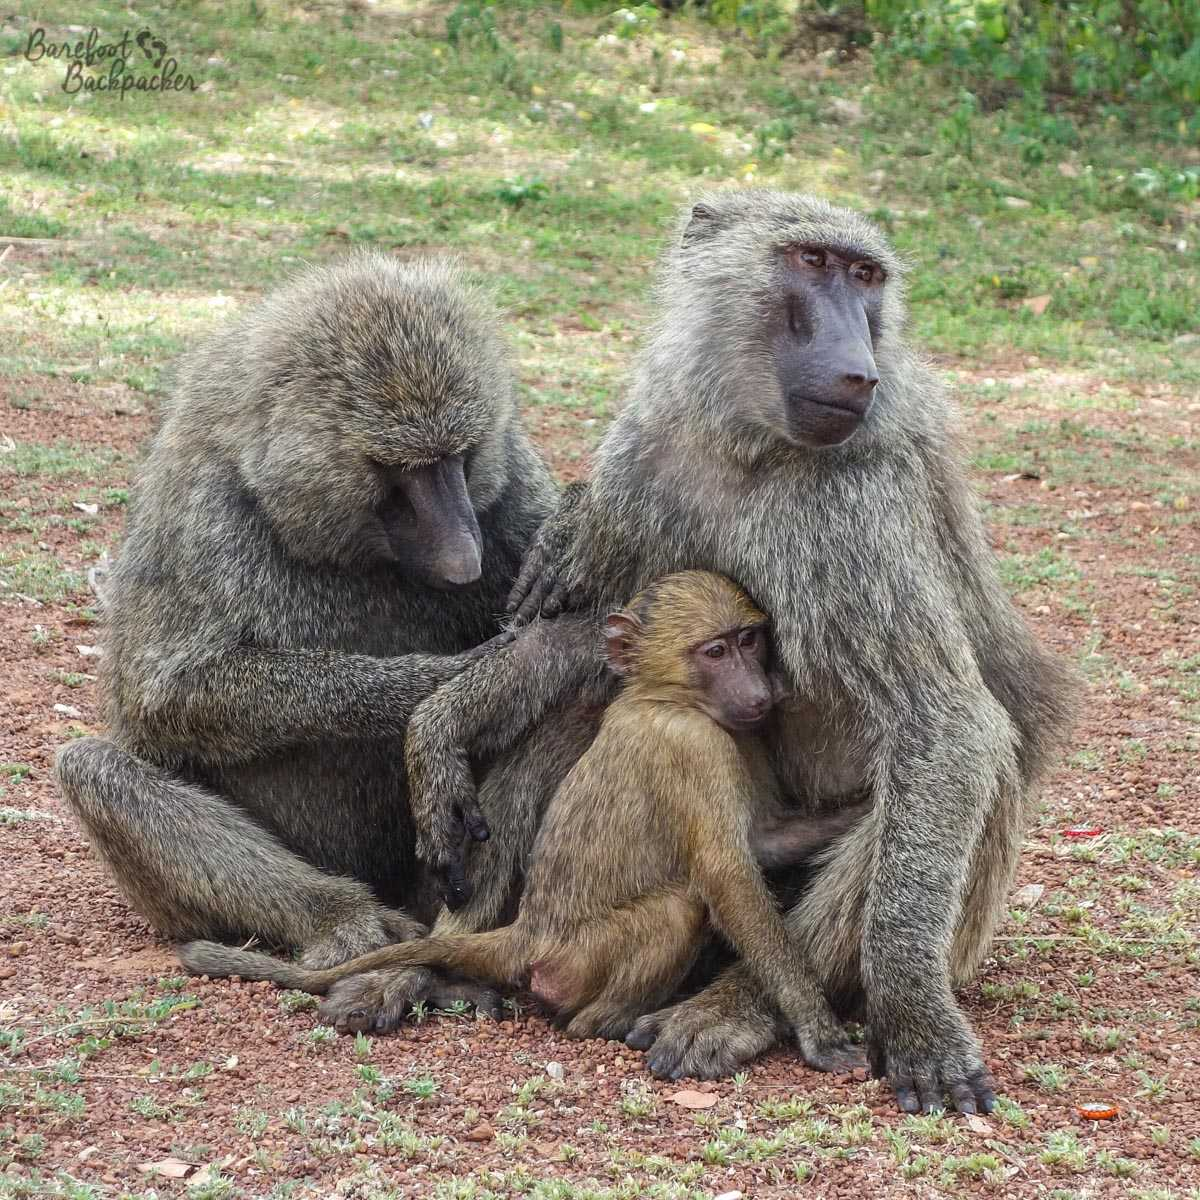 A family of monkeys at Mole National Park, Ghana